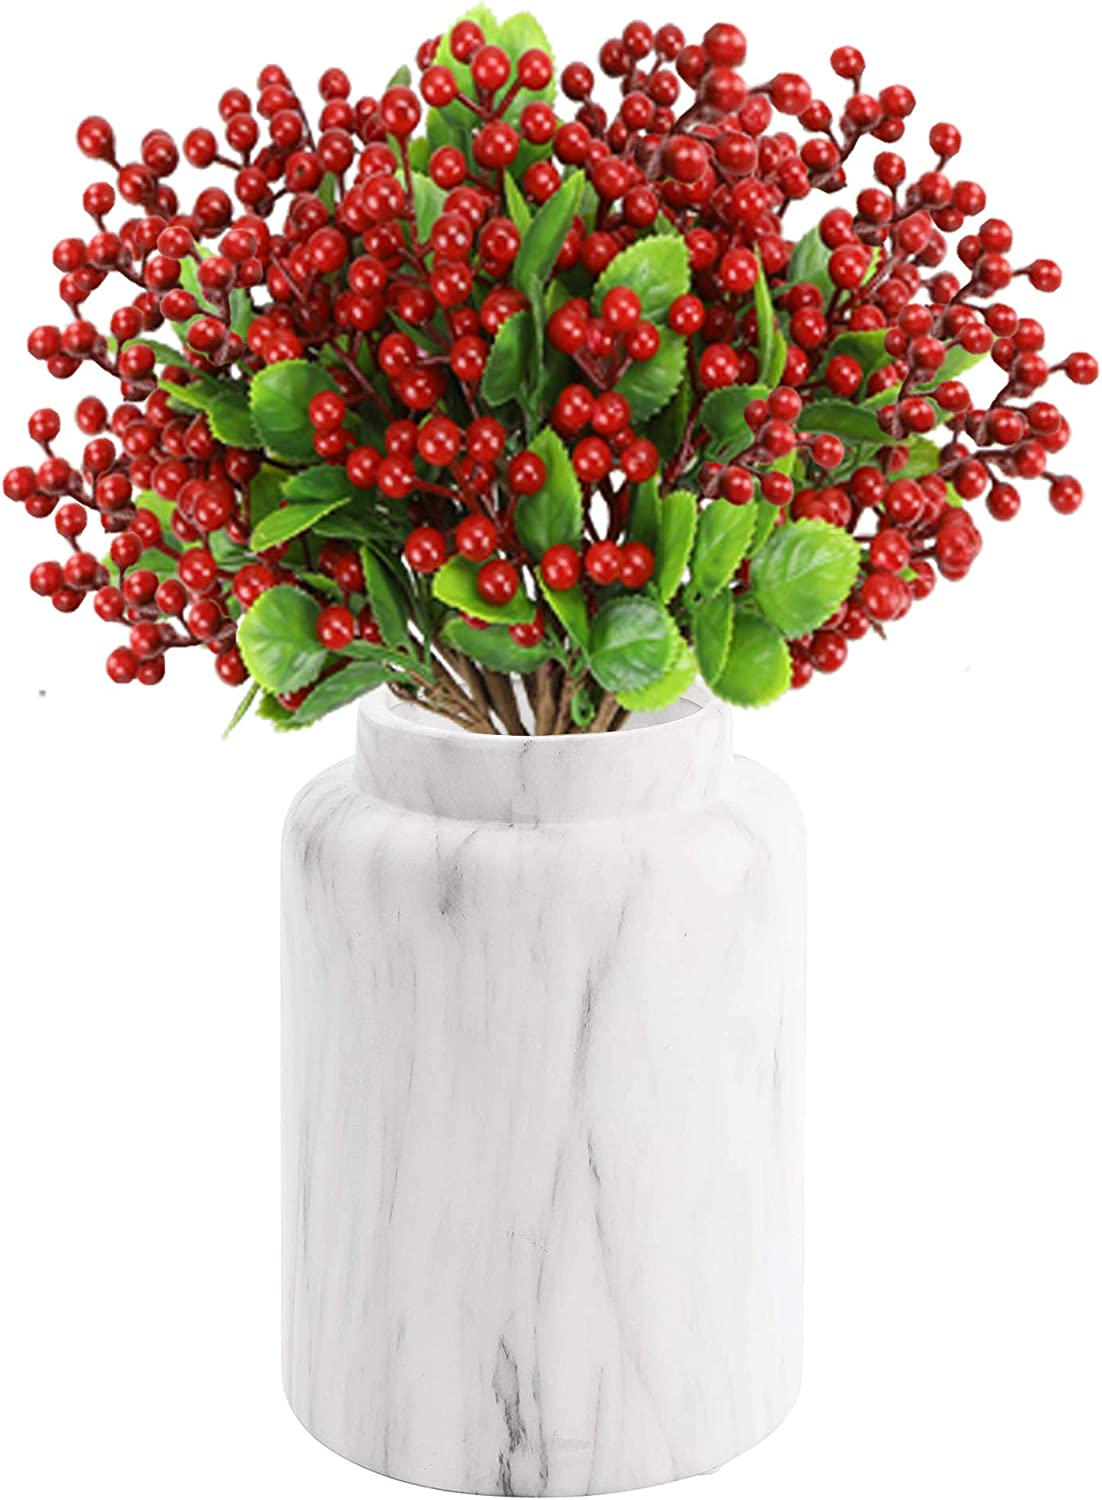 TITATI 18 Pcs Artificial Berry Stems 9.5 inch Fake Red Berries Holly Berry Picks Branches for Christmas Tree Decorations, Crafts, DIY Holiday Home Decor…